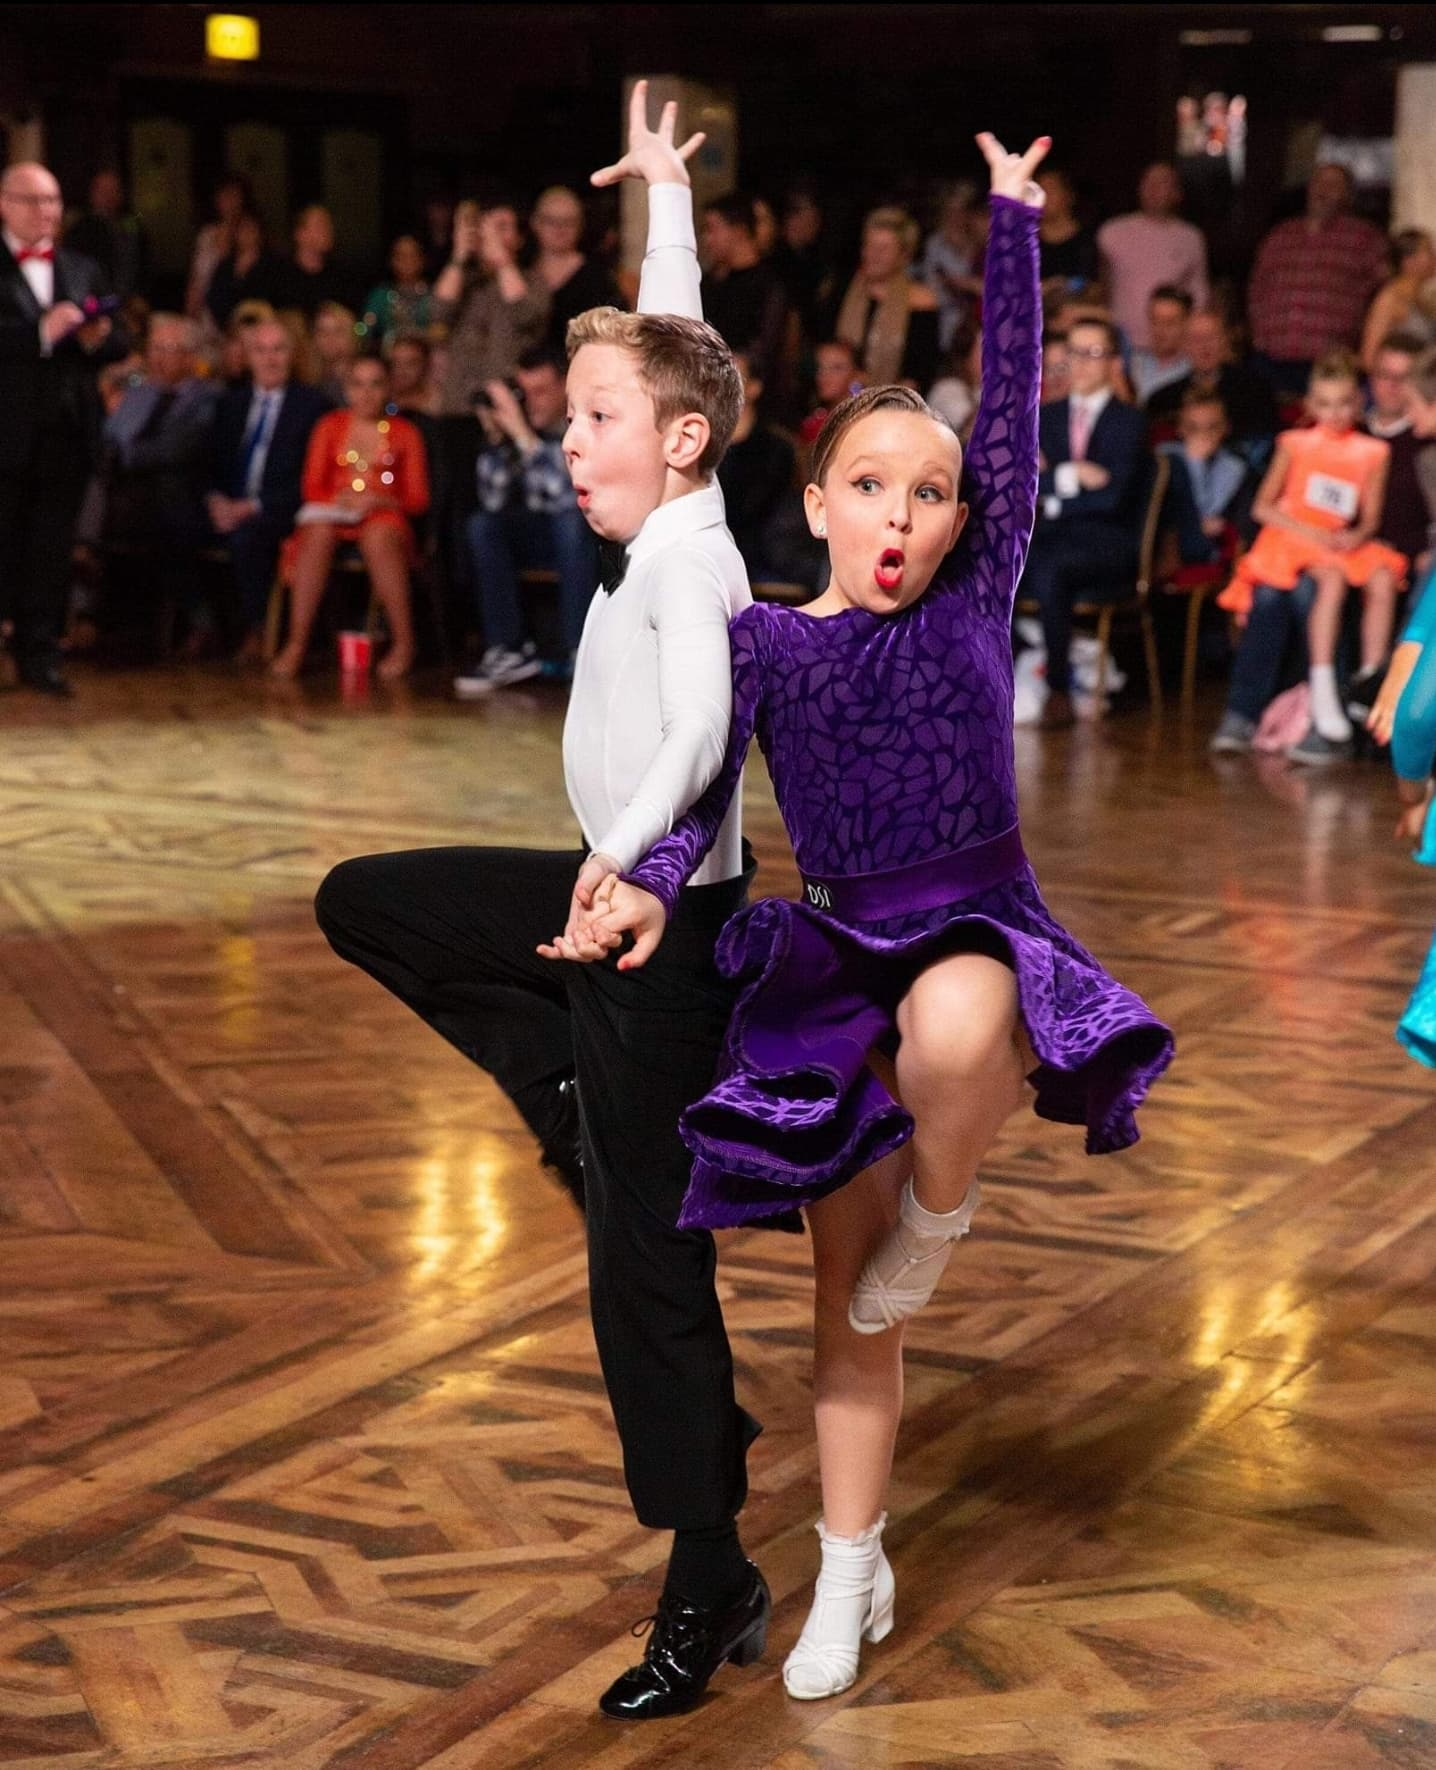 Dancer Eden Barbé, from Southport, is performing a danceathon to raise money for Alder Hey Children's Hospital in Liverpool after he was born with Craniosynostosis, which saw him need nine hours of surgery to reconstruct his skull